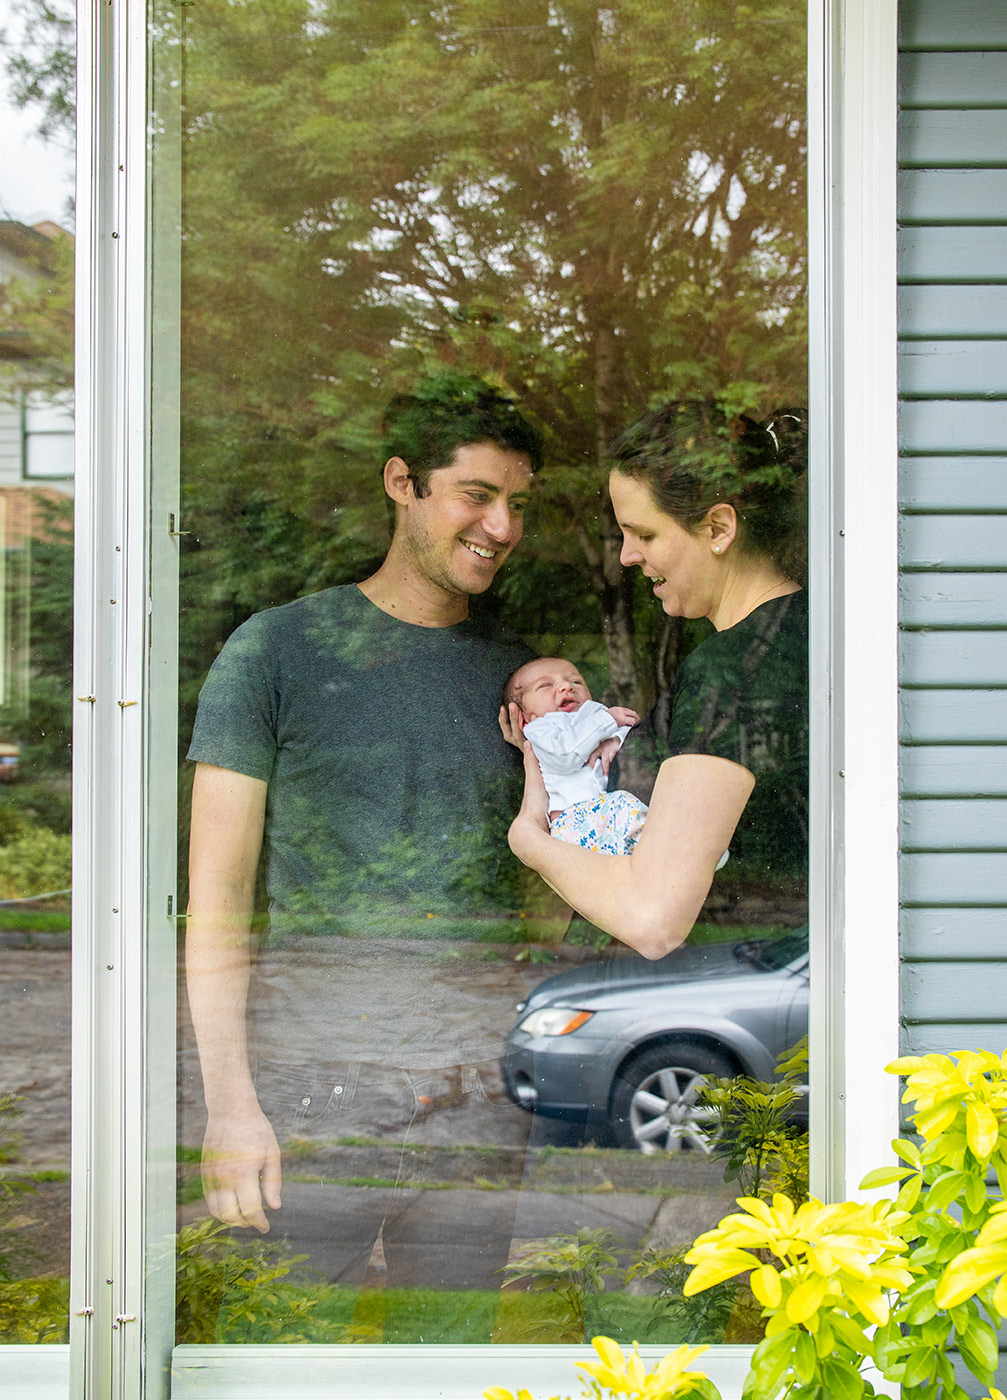 Portland Editorial image of healthcare worker, husband and newborn